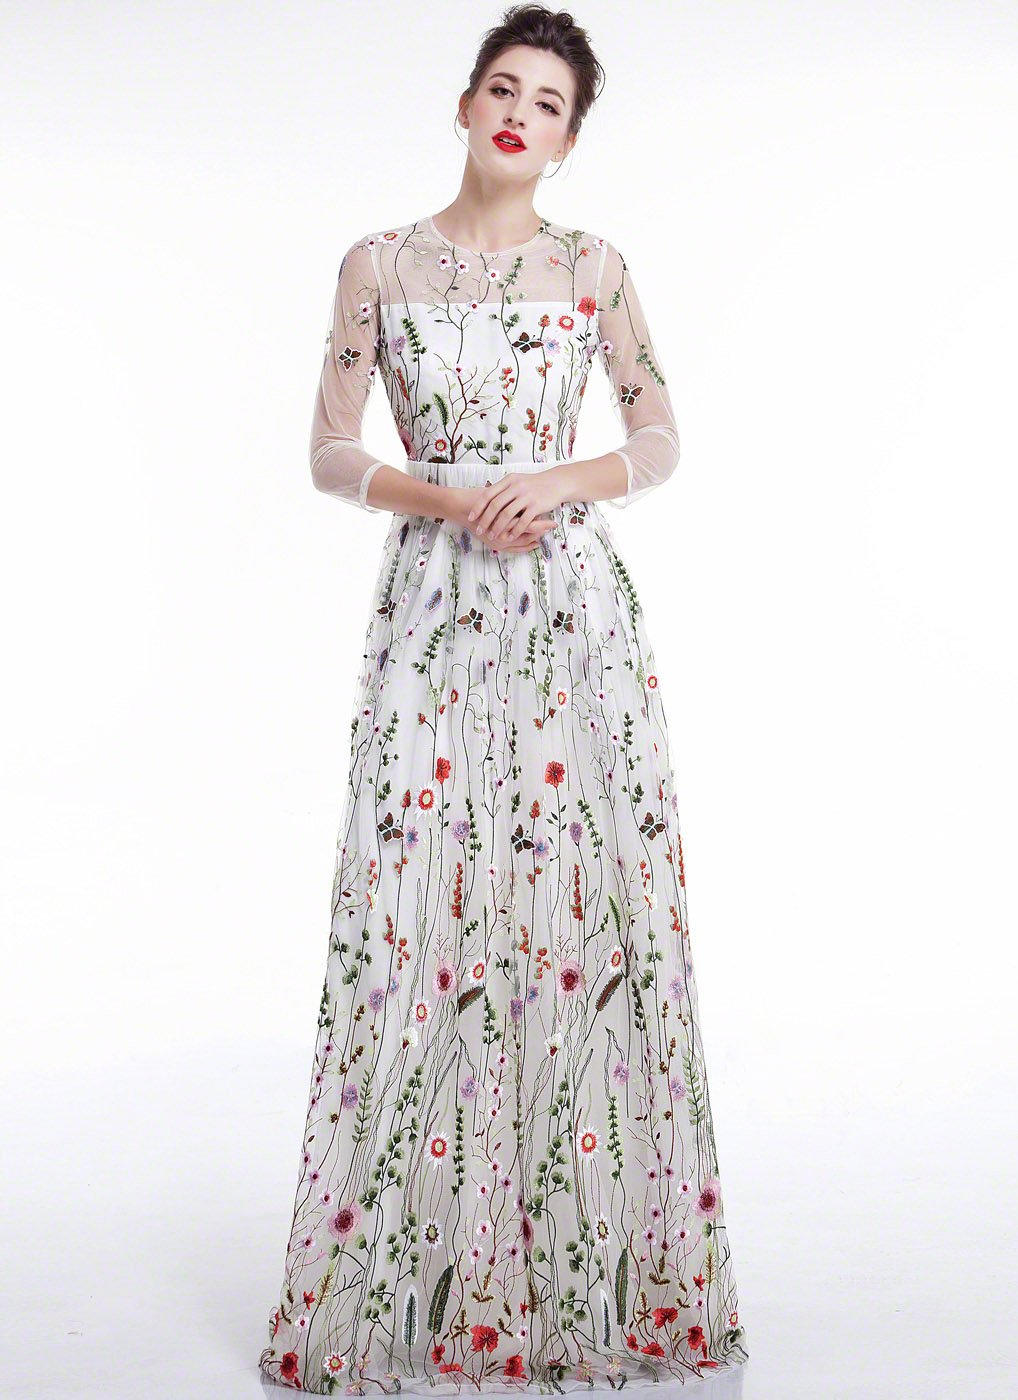 Watch - Evening floral dresses video